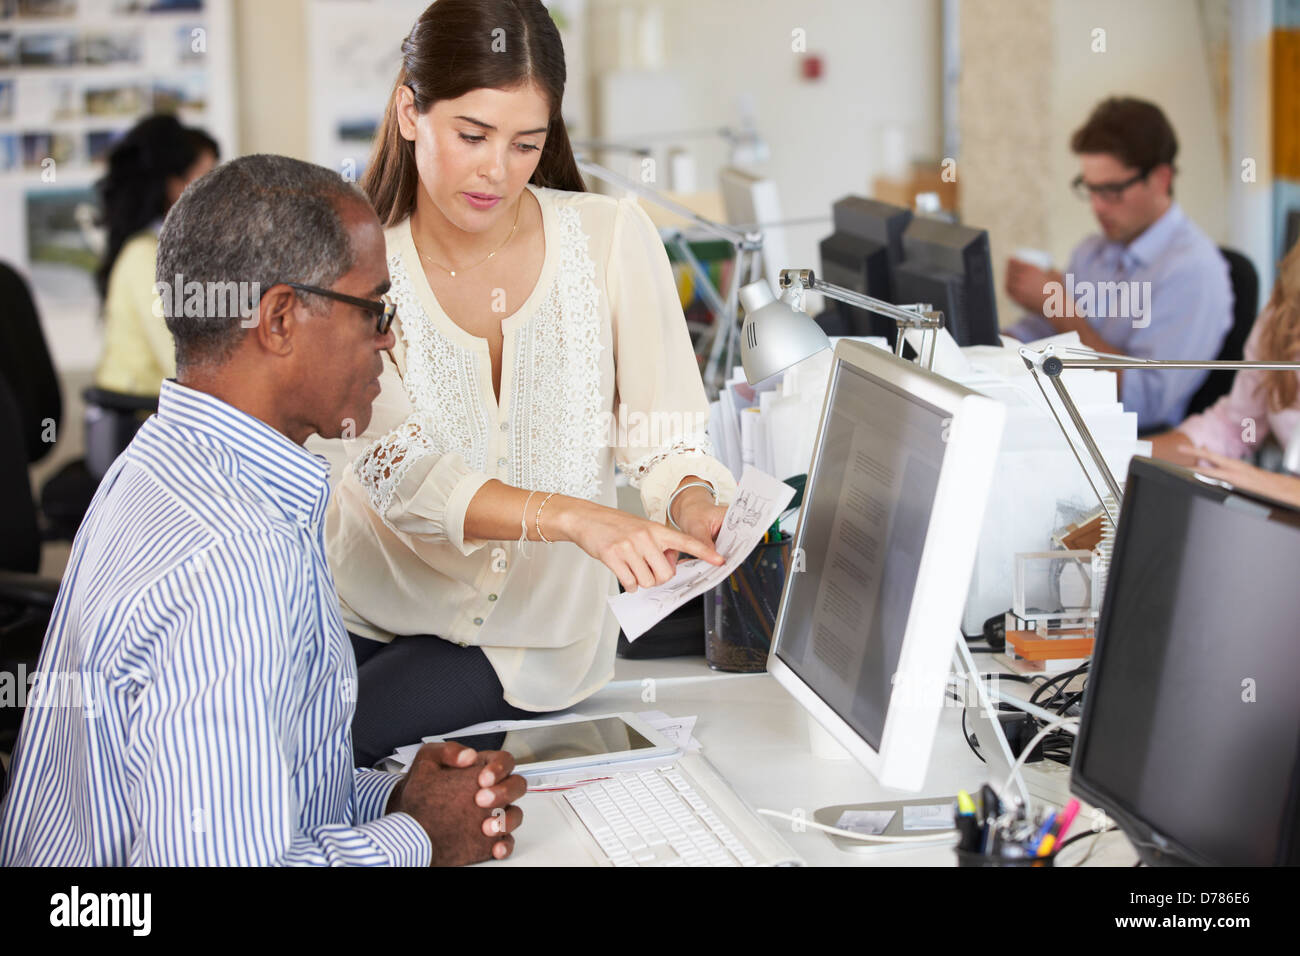 Workers At Desks In Busy Creative Office - Stock Image